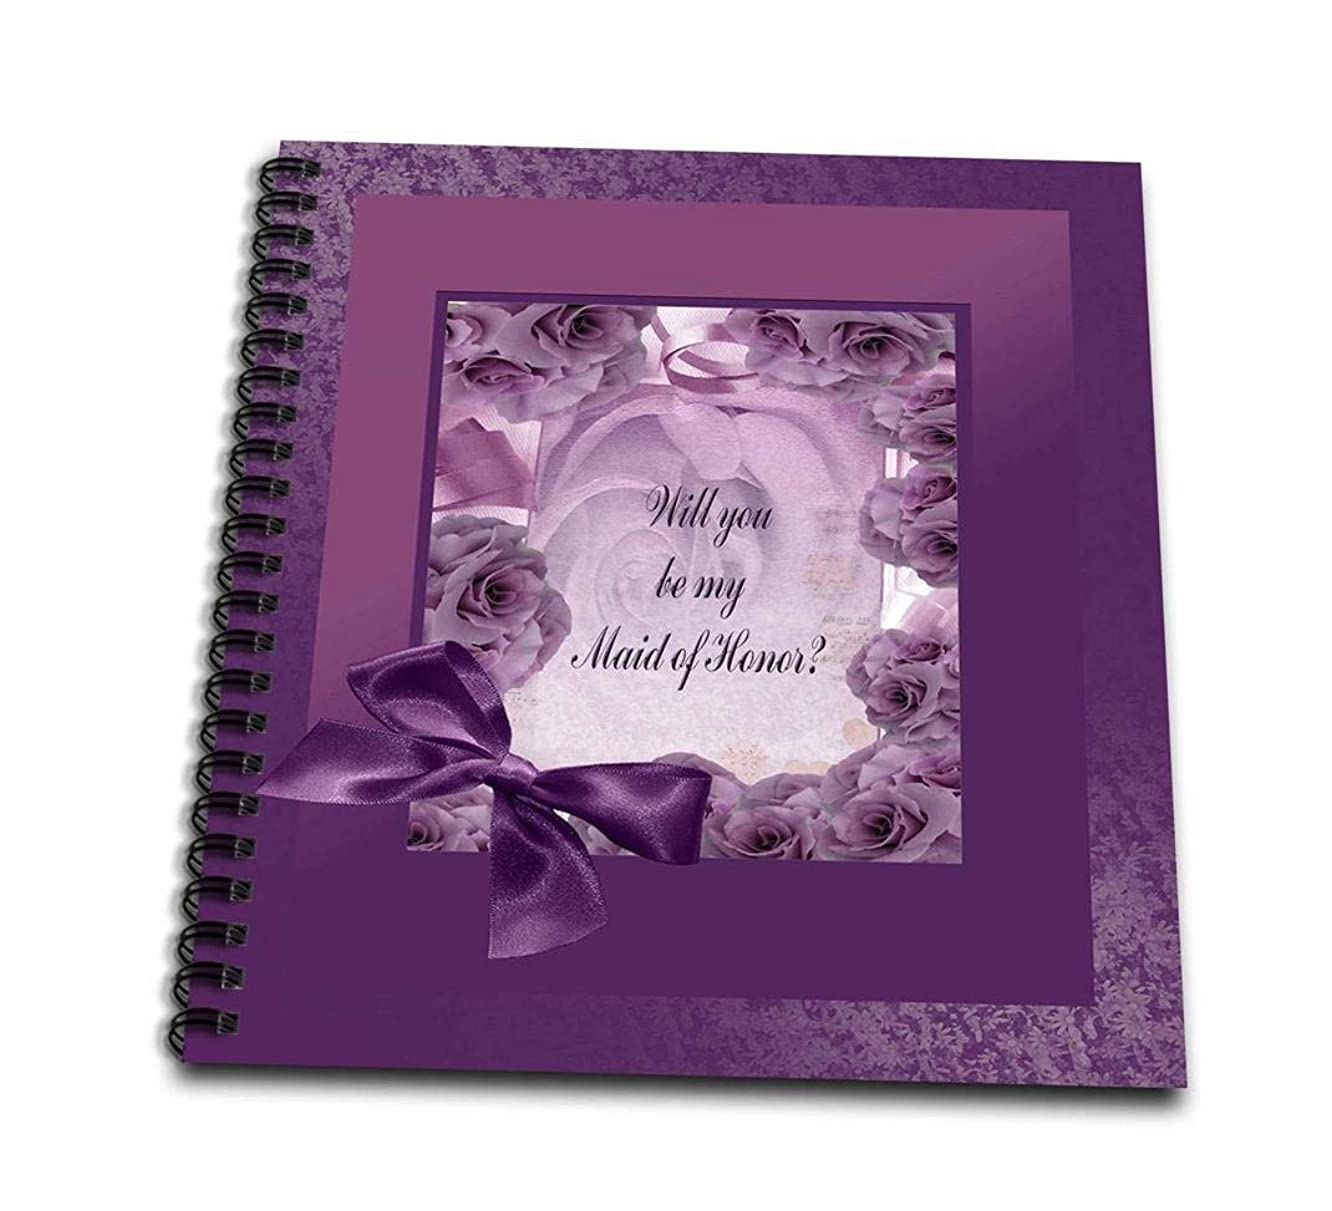 3dRose db_49242_1 Maid of Honor, Plum Pink Rose Frame with Bow-Drawing Book, 8 by 8-Inch